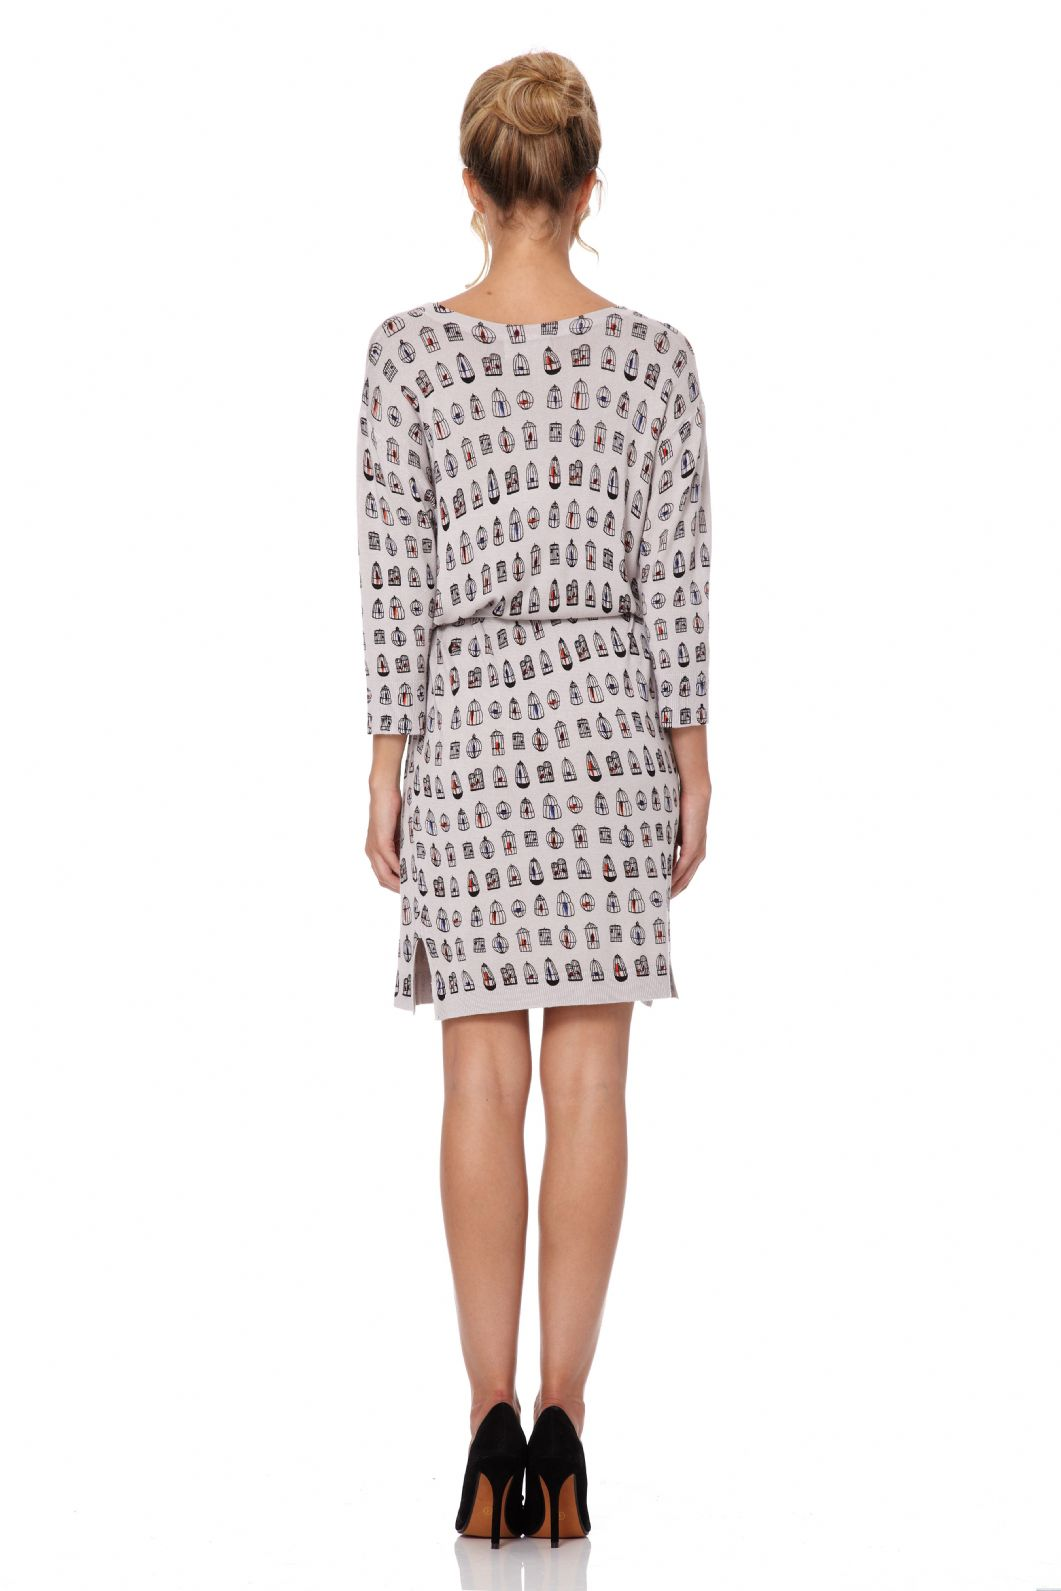 http://www.conmigolondon.co.uk/ekmps/shops/conmigo/images/miss-jolie-sk3435-bird-cage-print-jersey-dress-grey-%5B3%5D-2028-p.jpg